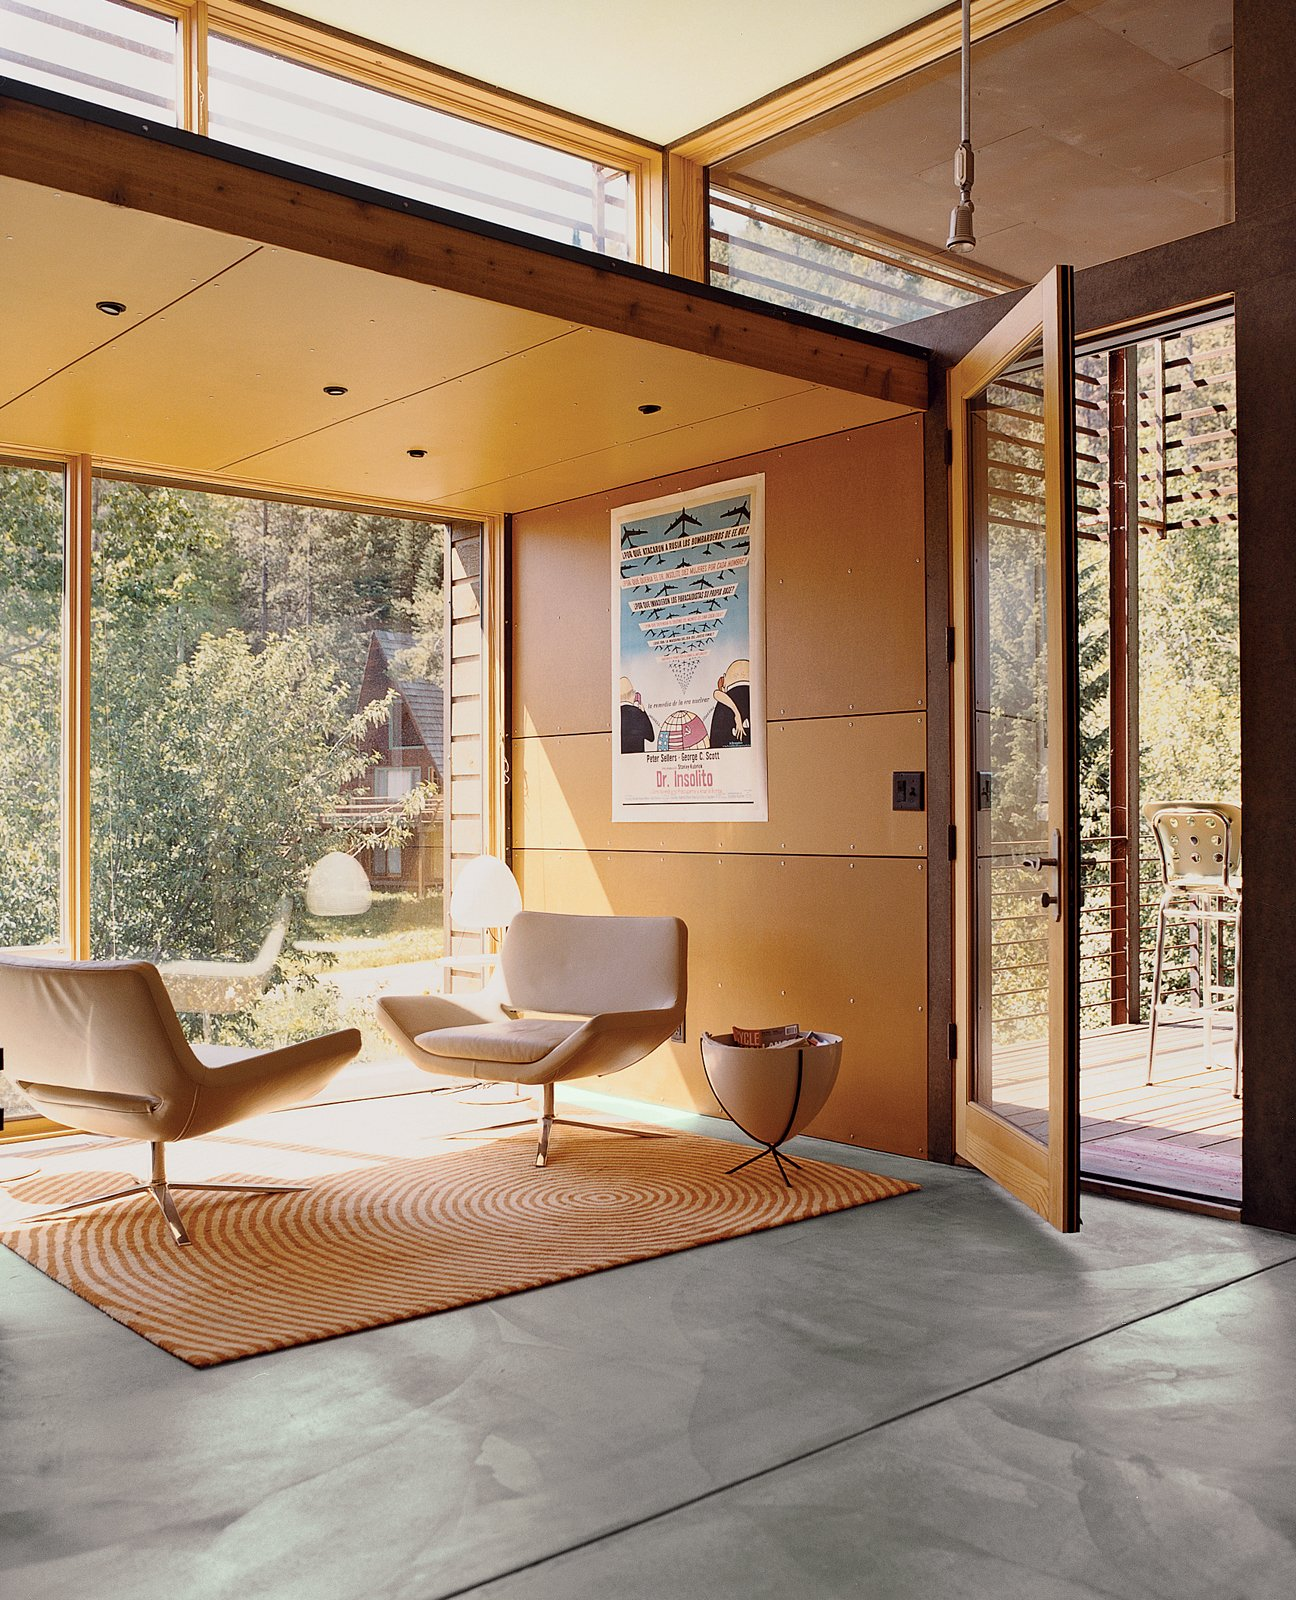 For the interior of the Stanwood residence, Logan returned to his minimalist palette of color and materials. The Stanwoods took particular zeal in furnishing the living area with a number of pieces from Limn in San Francisco, including a pair of B&B Italia chairs and a custom rug from Ligne Roset.